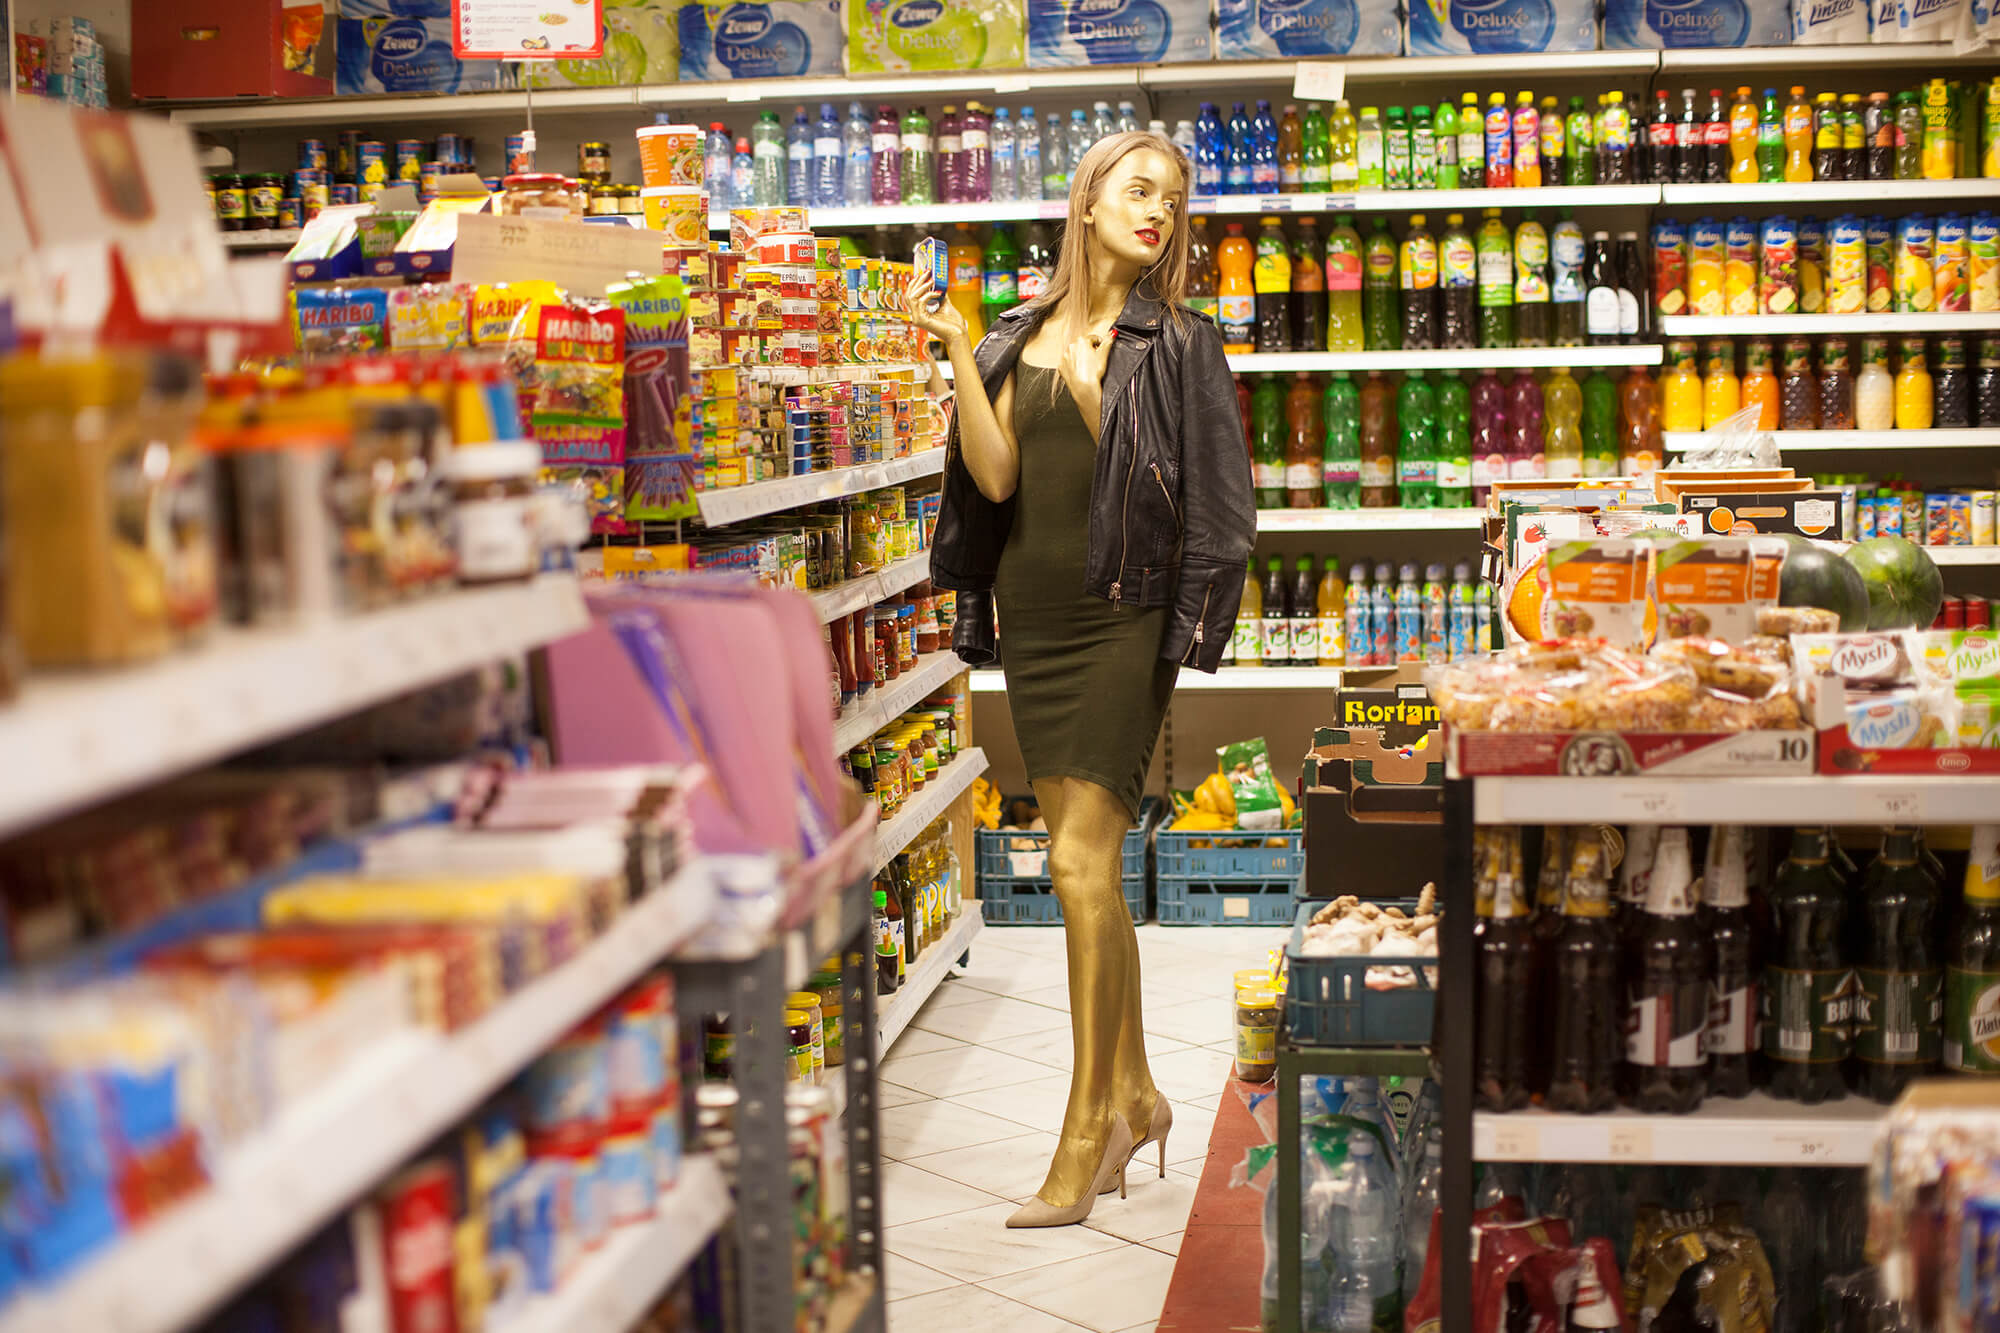 A girl, covered with gold makeup, wearing a green dress, standing in a grocery